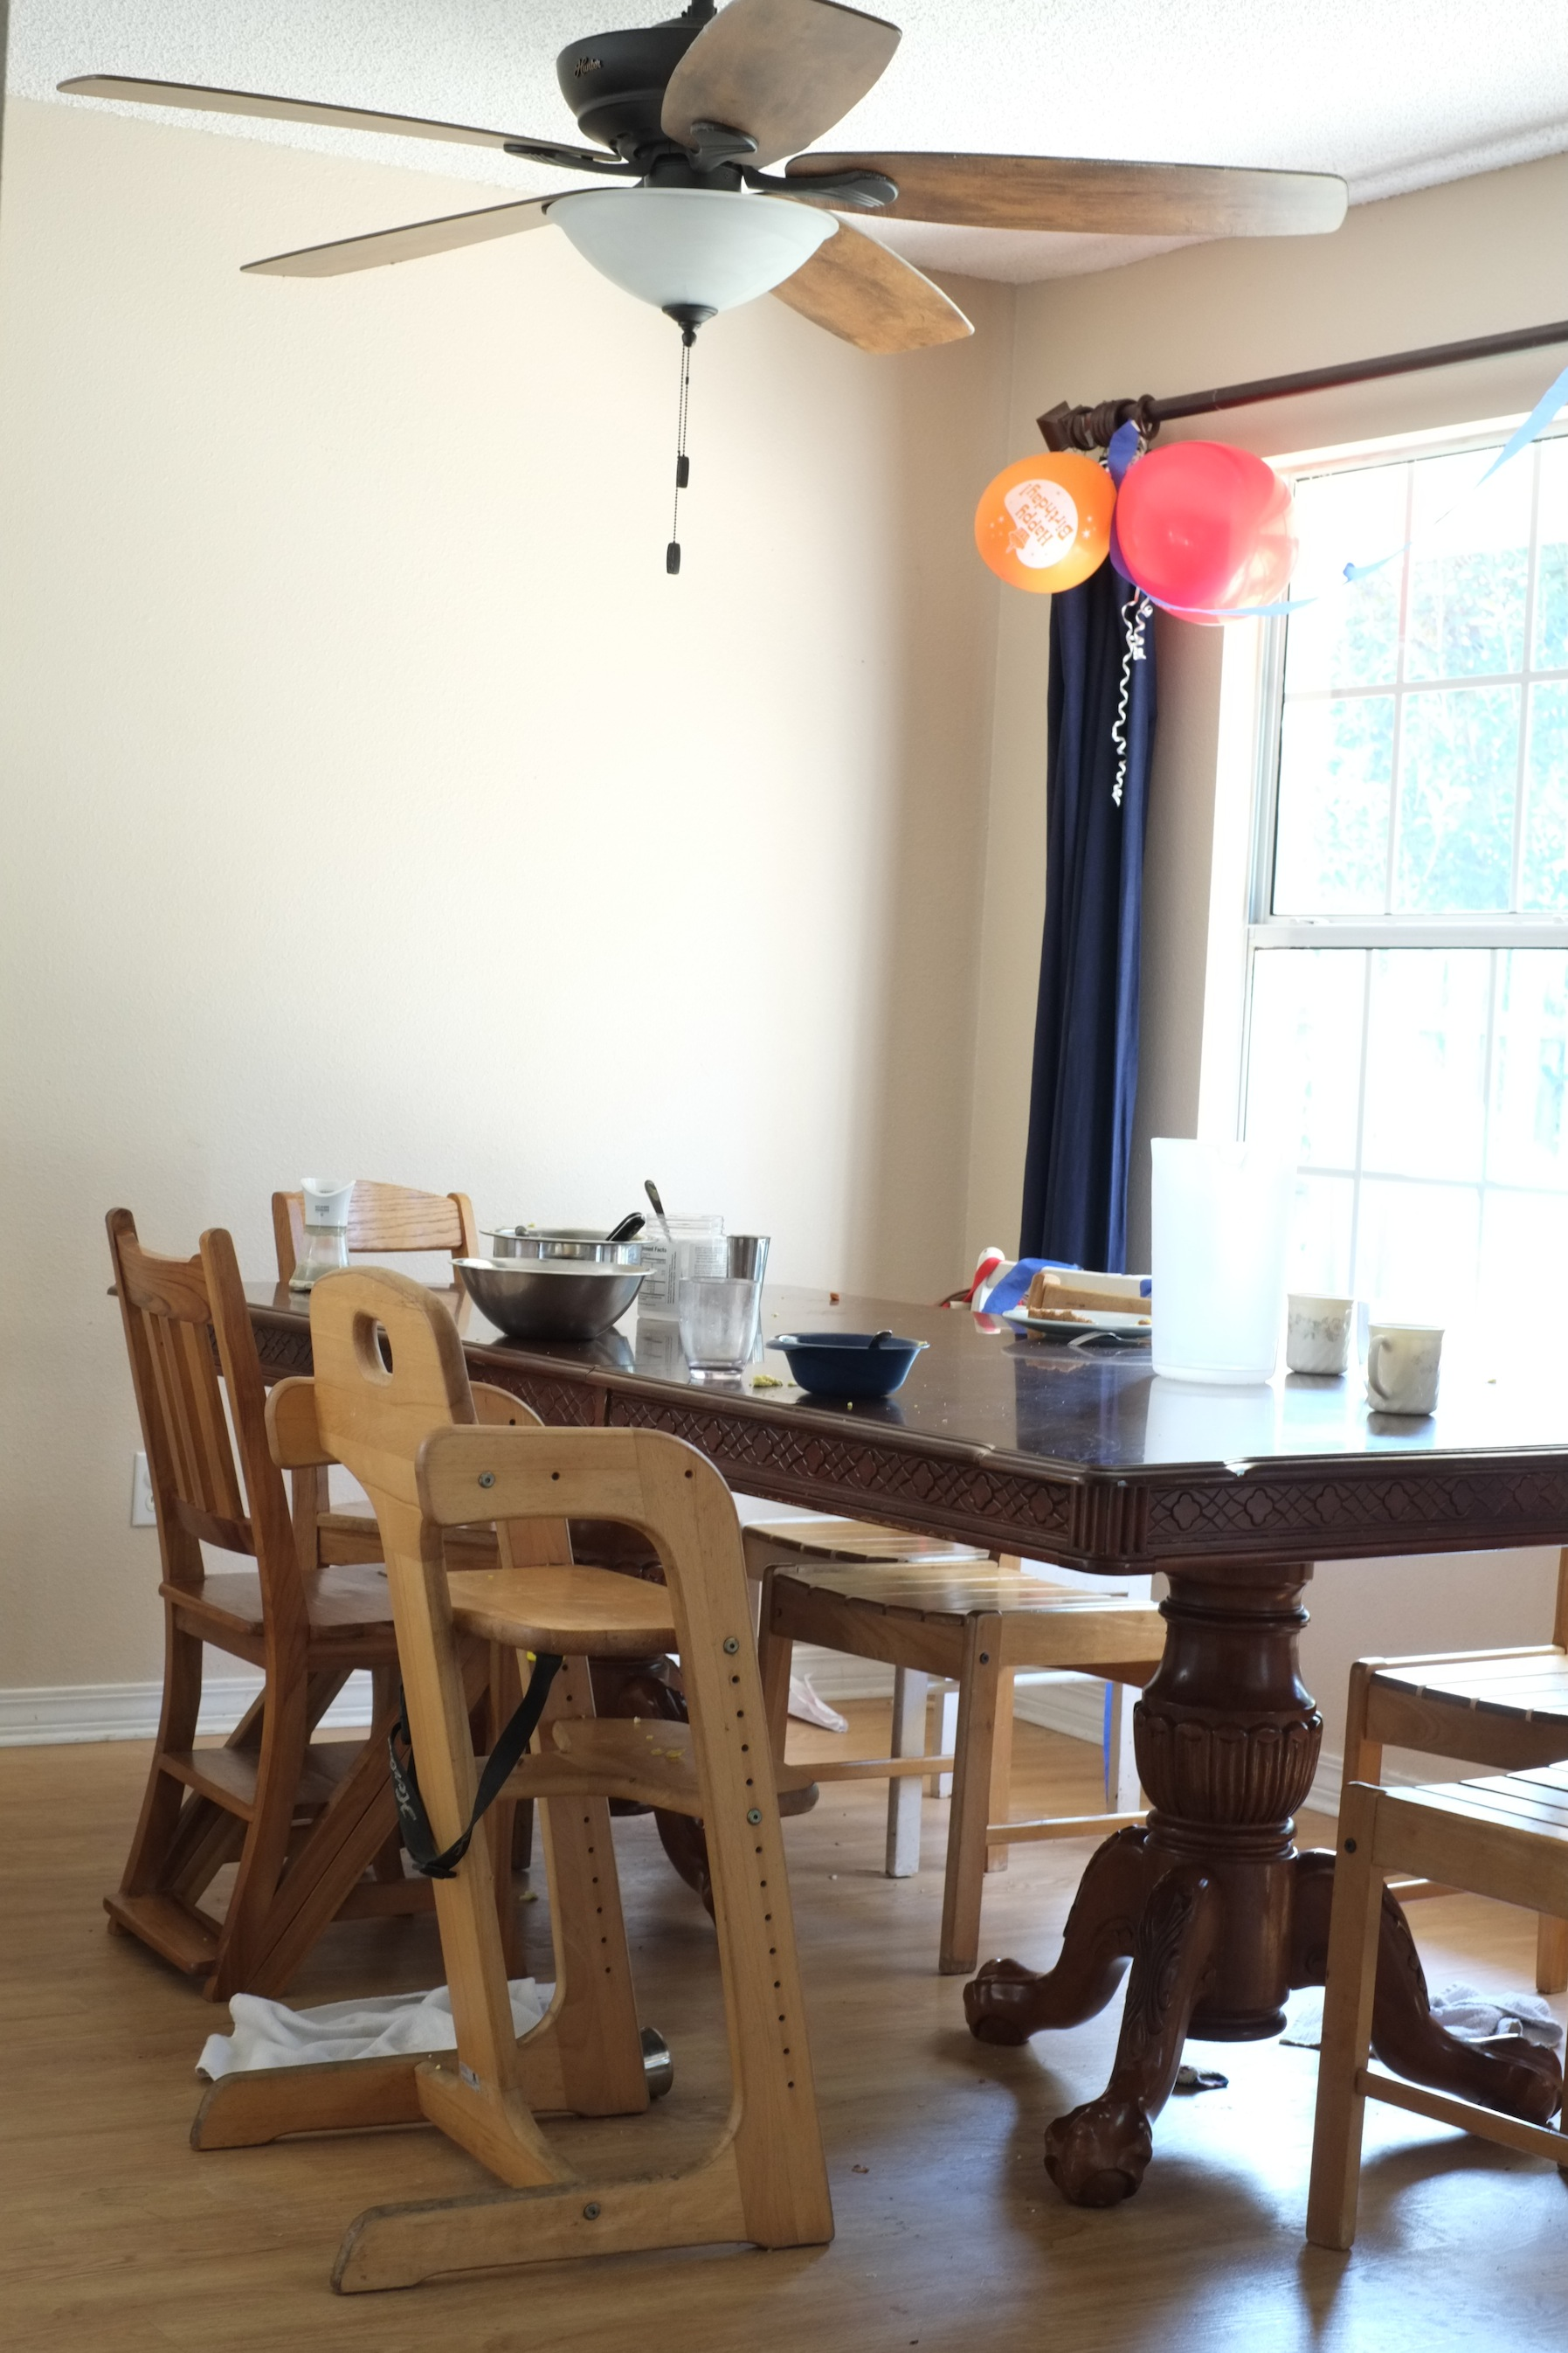 A messy dining table after a wonderful time of fellowship together at home